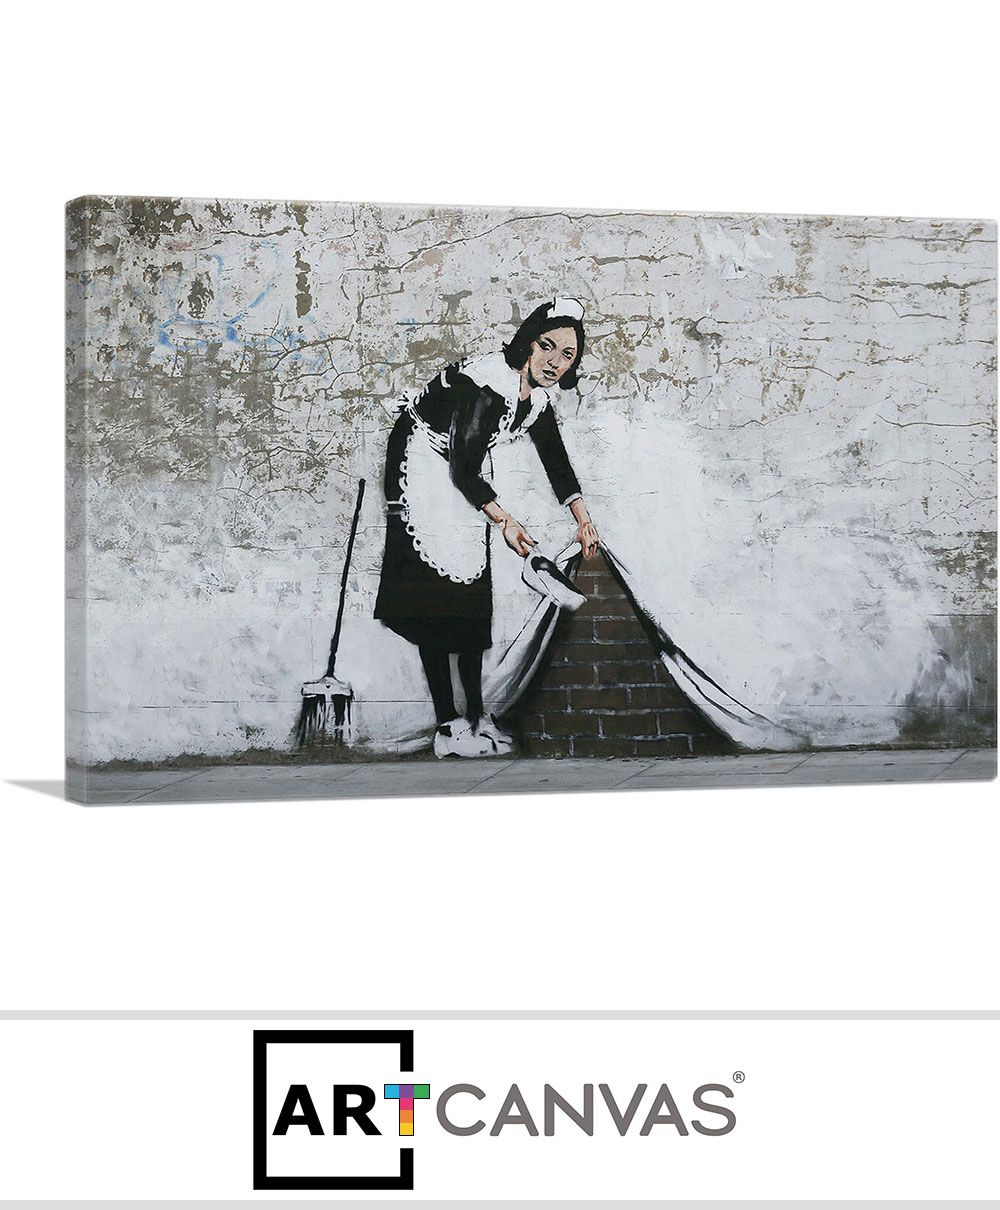 Banksy Canvas Art Maid In London Canvas Art Print For Sale Artcanvas Banksy